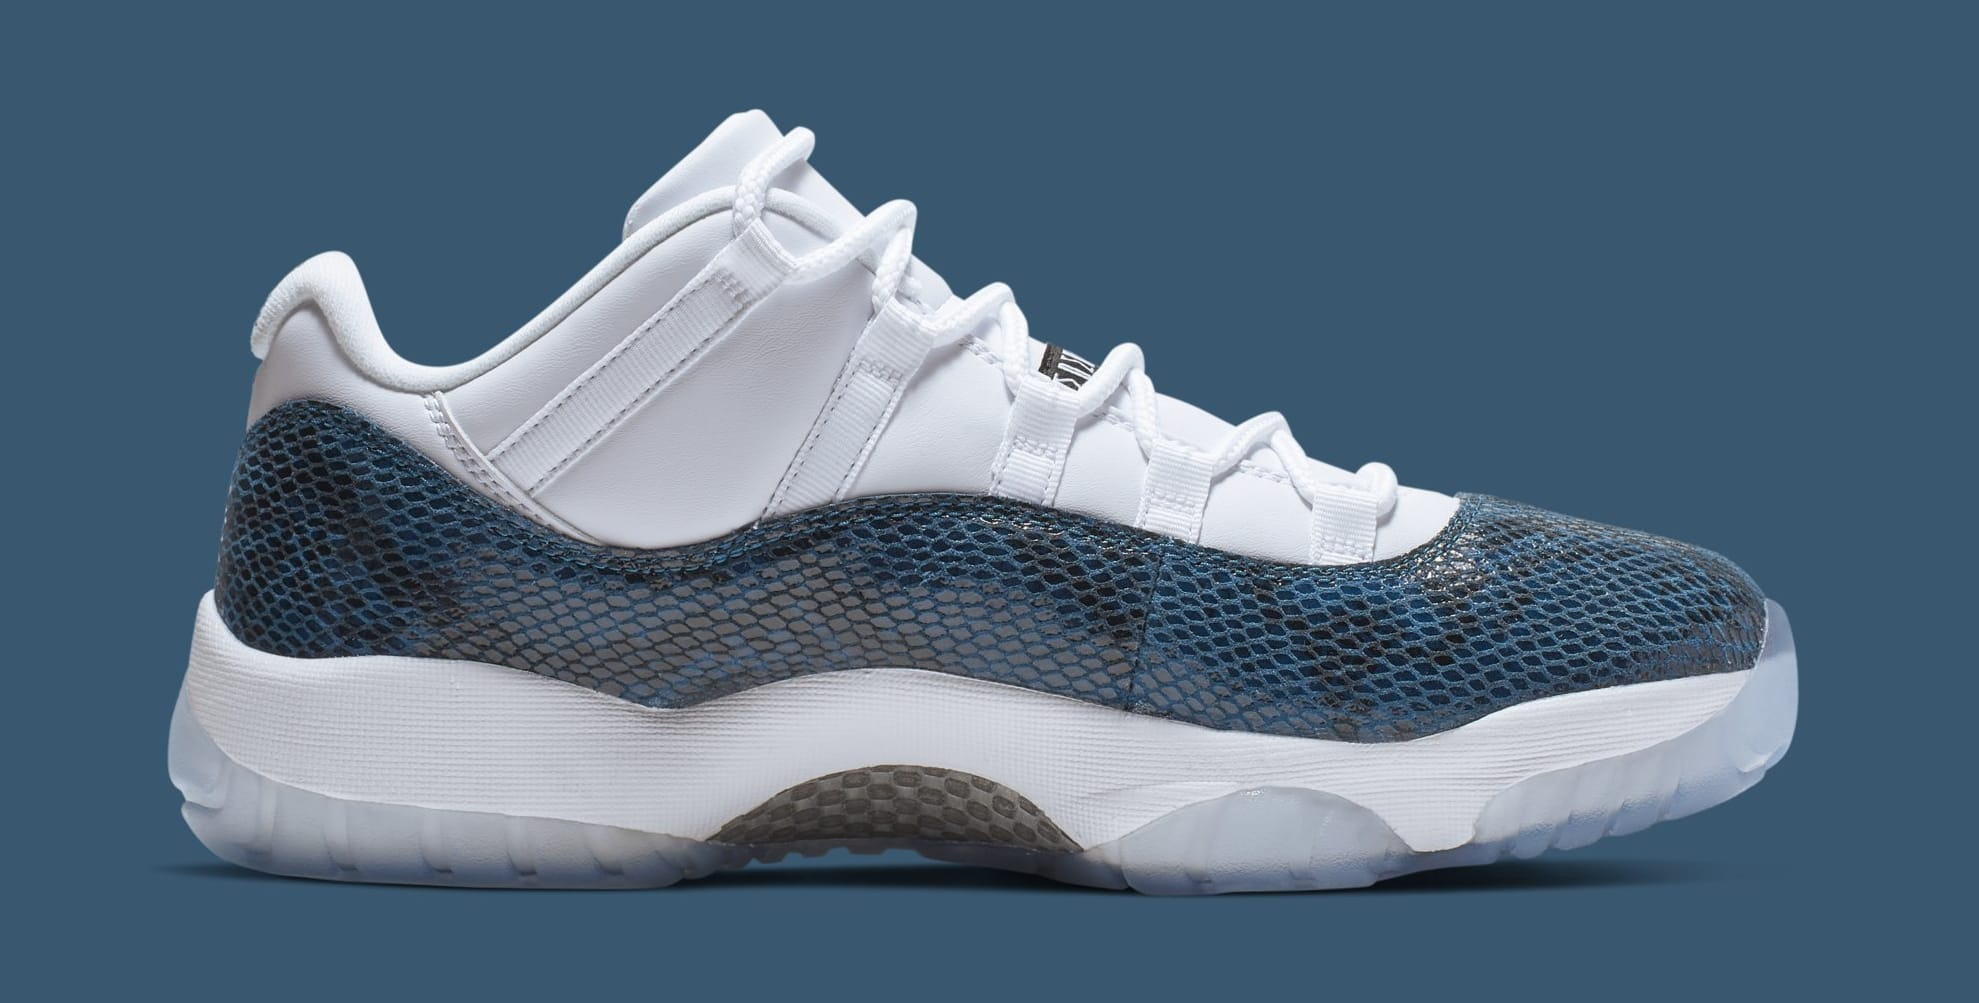 low cost 23057 50317 Image via Nike Air Jordan 11 Low  Blue Snakeskin  CD6846-102 (Medial)